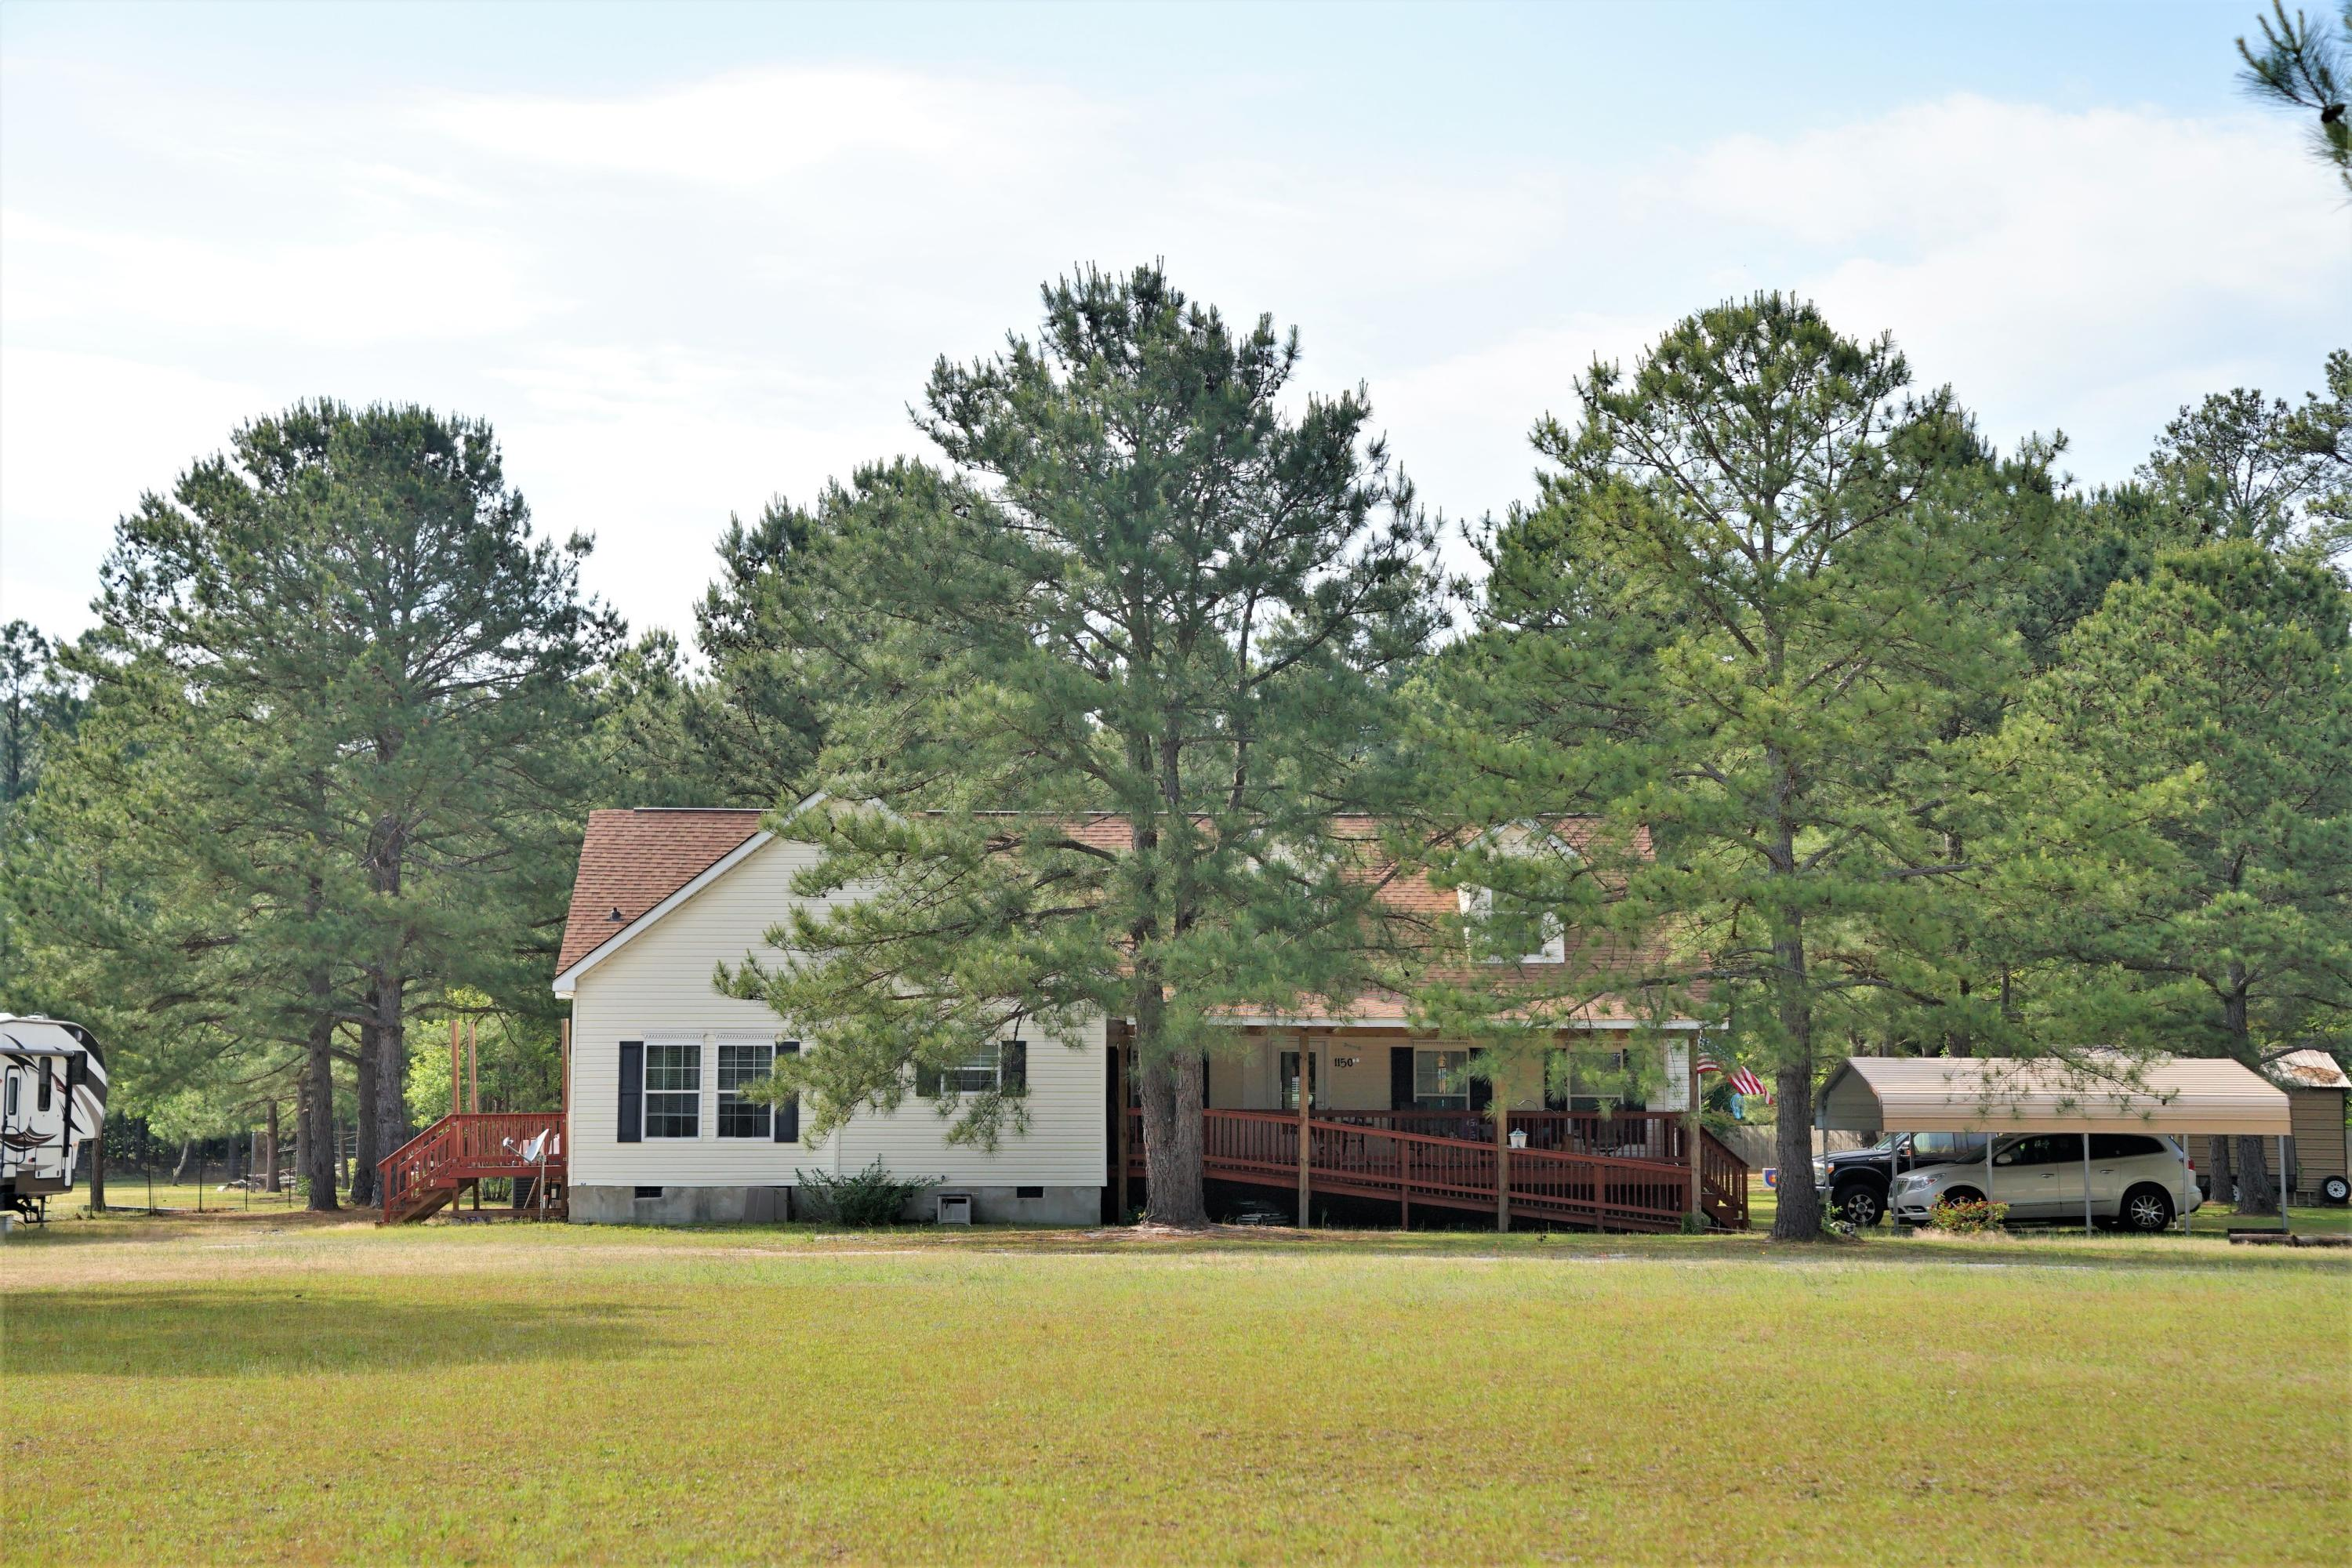 1150  Reservation Road, Aberdeen in Hoke County, NC 28315 Home for Sale